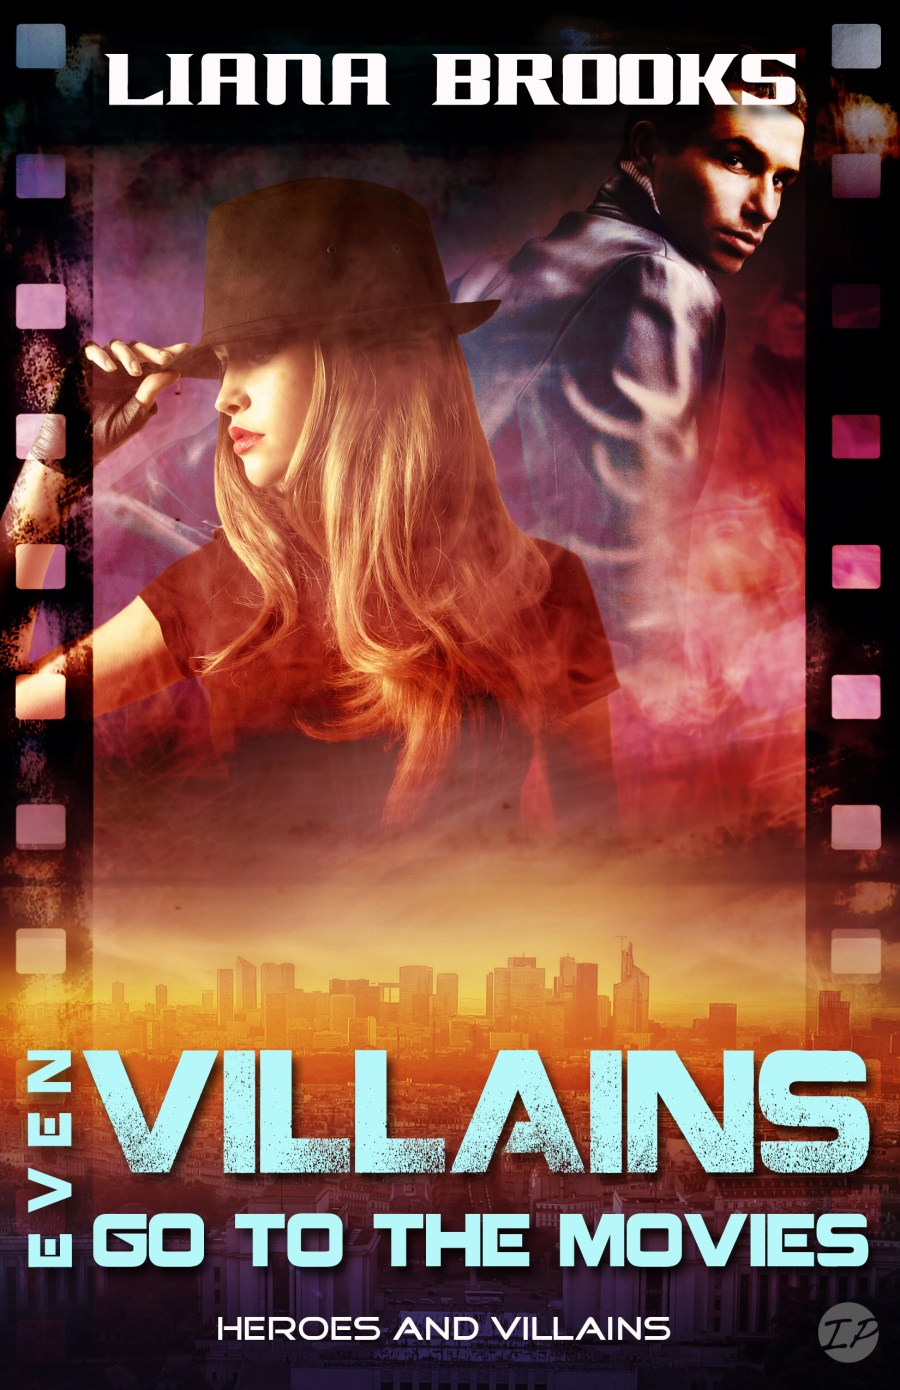 Even Villains Go To The Movies (Heroes & Villains #2)